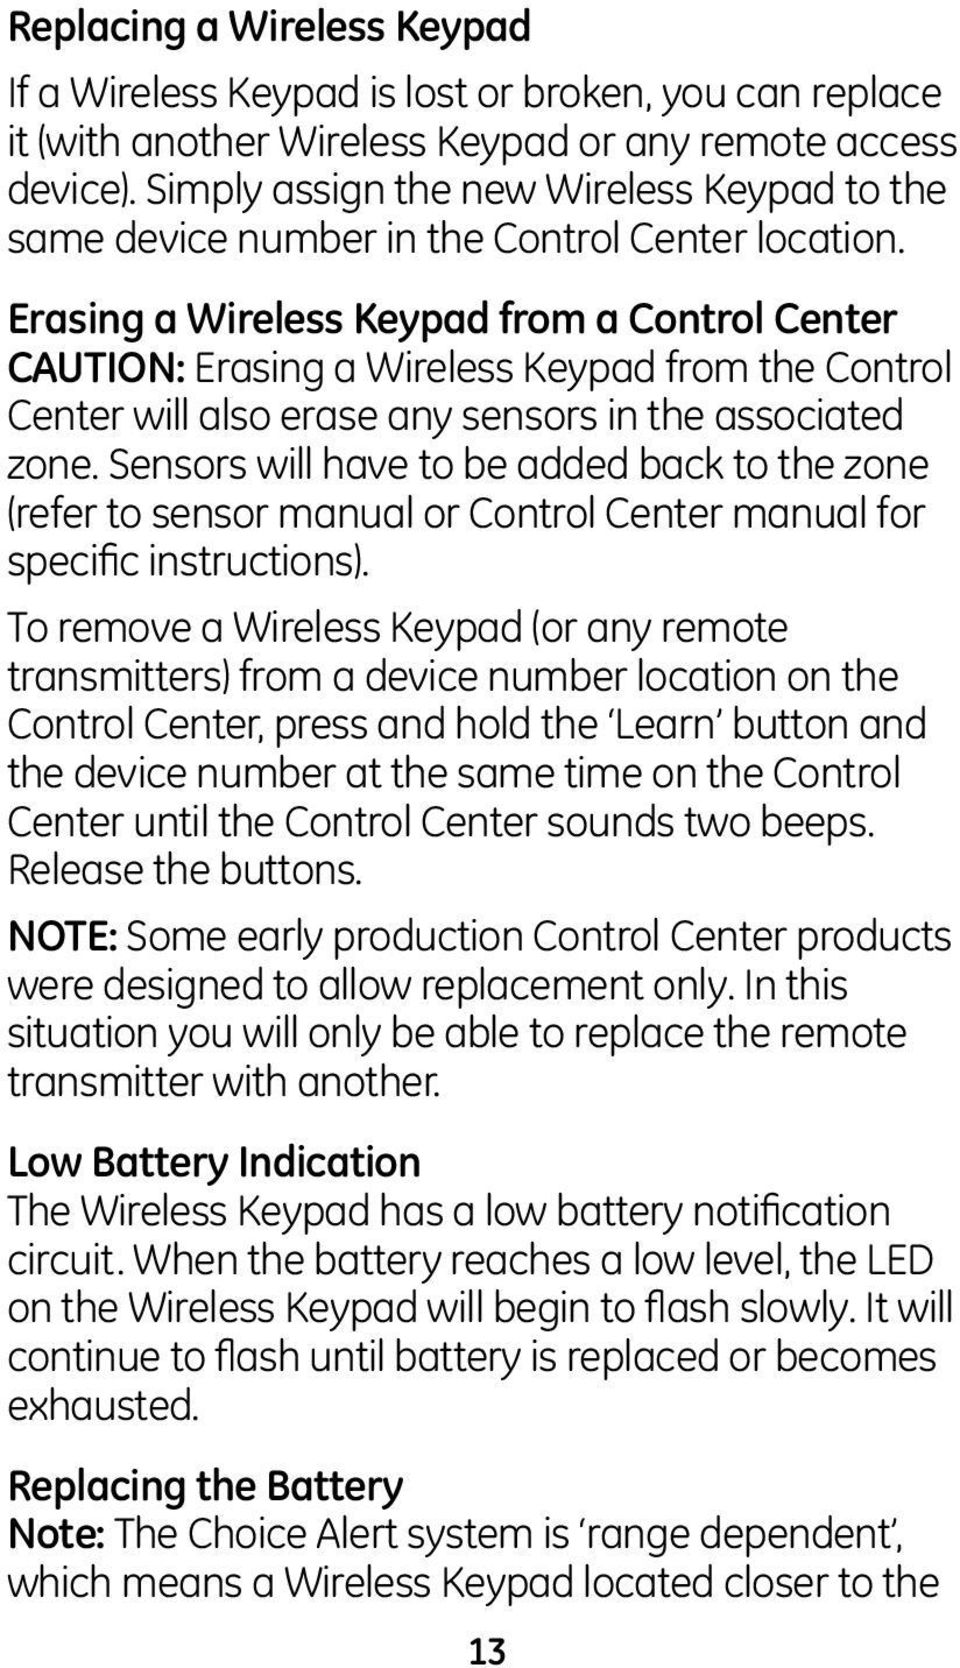 Erasing a Wireless Keypad from a Control Center CAUTION: Erasing a Wireless Keypad from the Control Center will also erase any sensors in the associated zone.